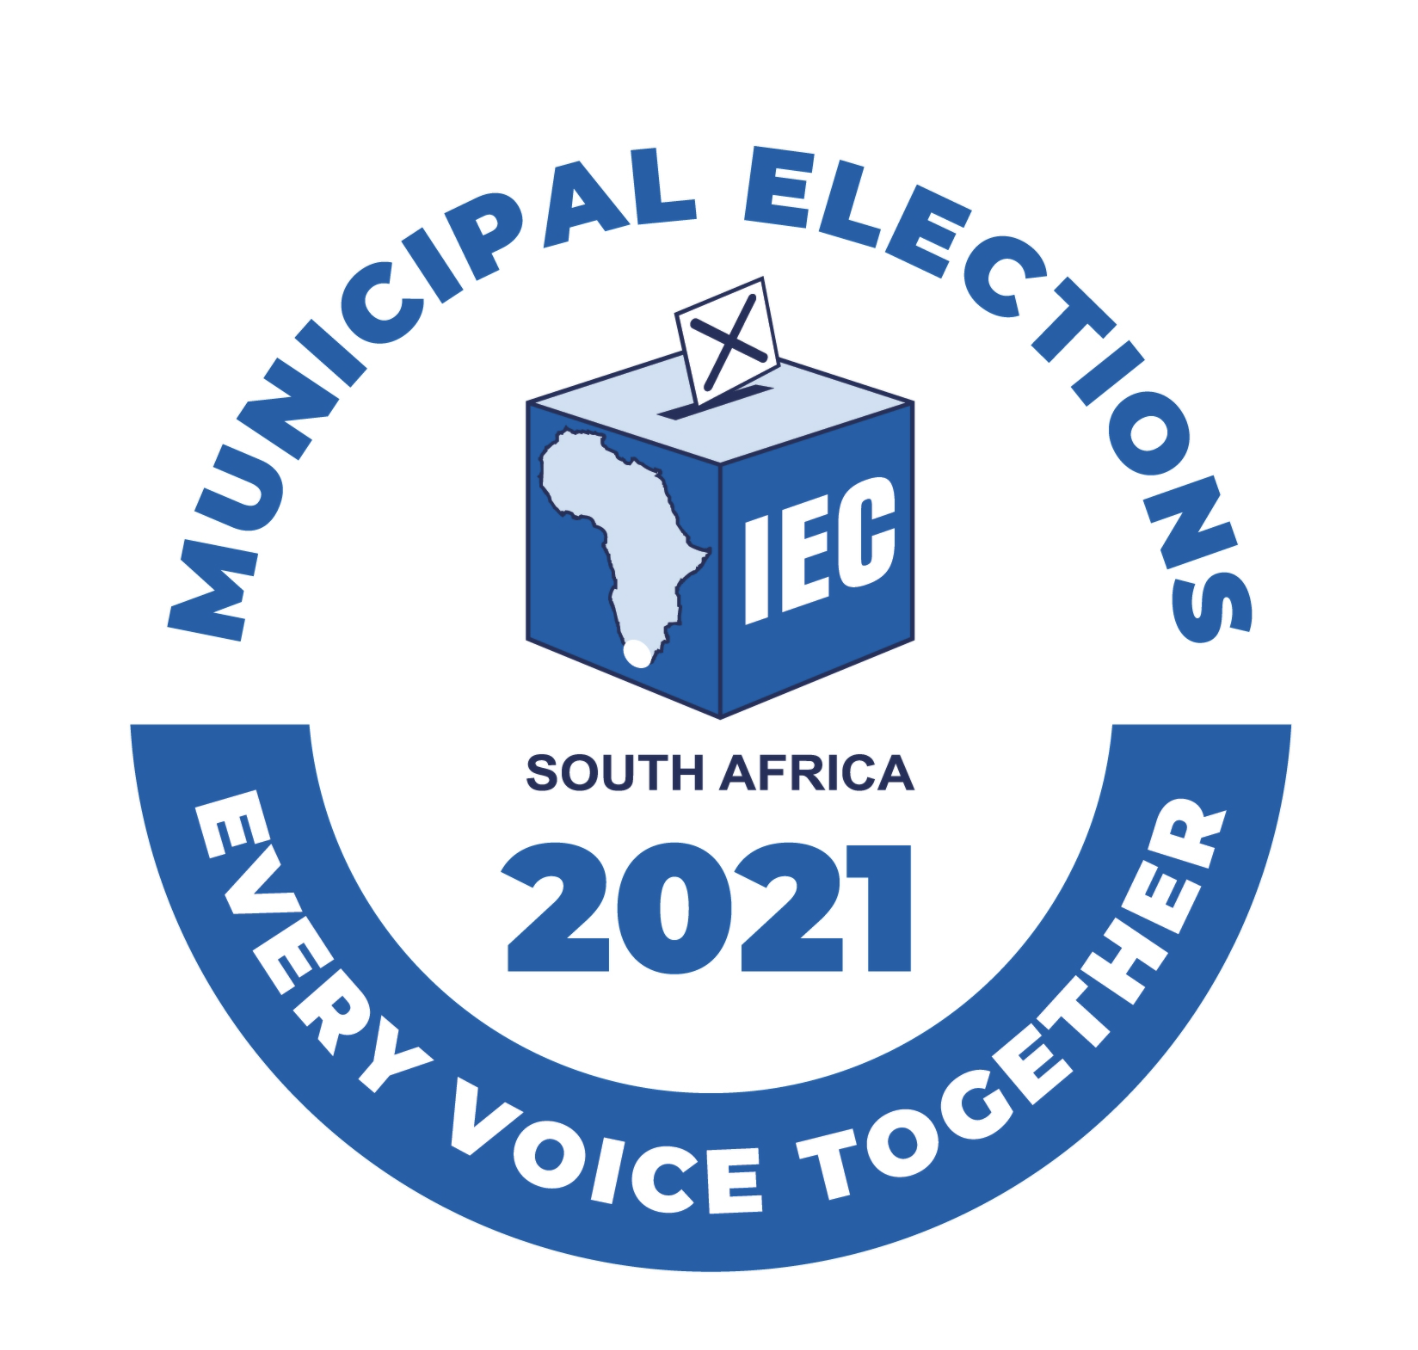 Voter Registration for Local Government Election close at midnight: Here's how to register online